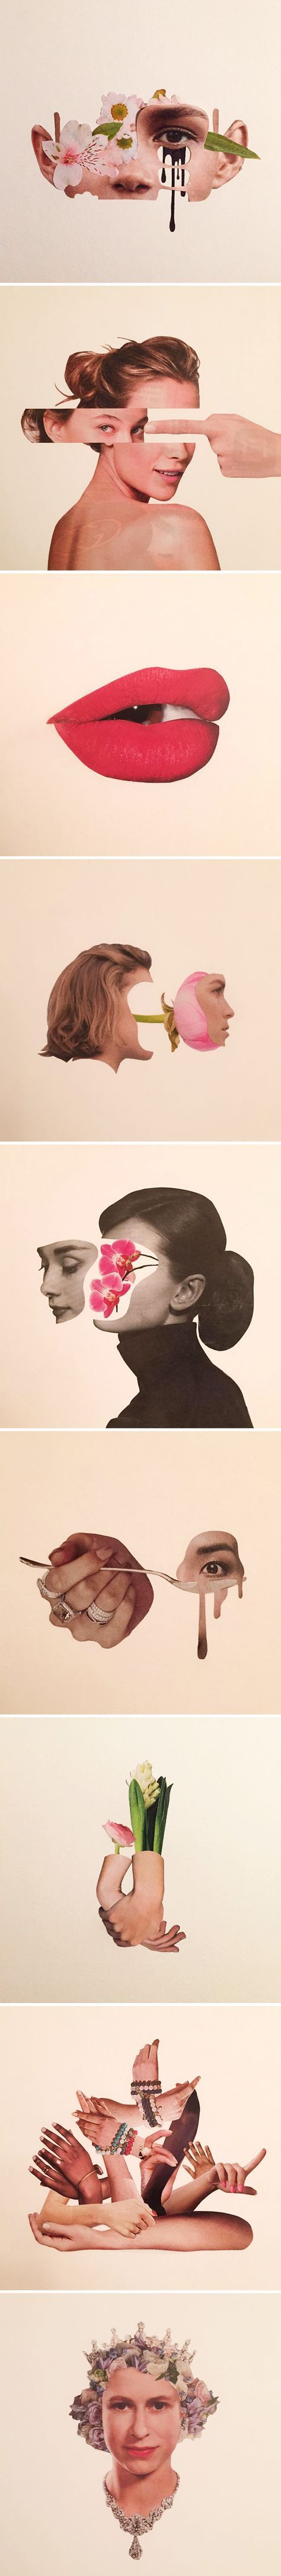 hand-cut collages by adam hale aka mr.splice